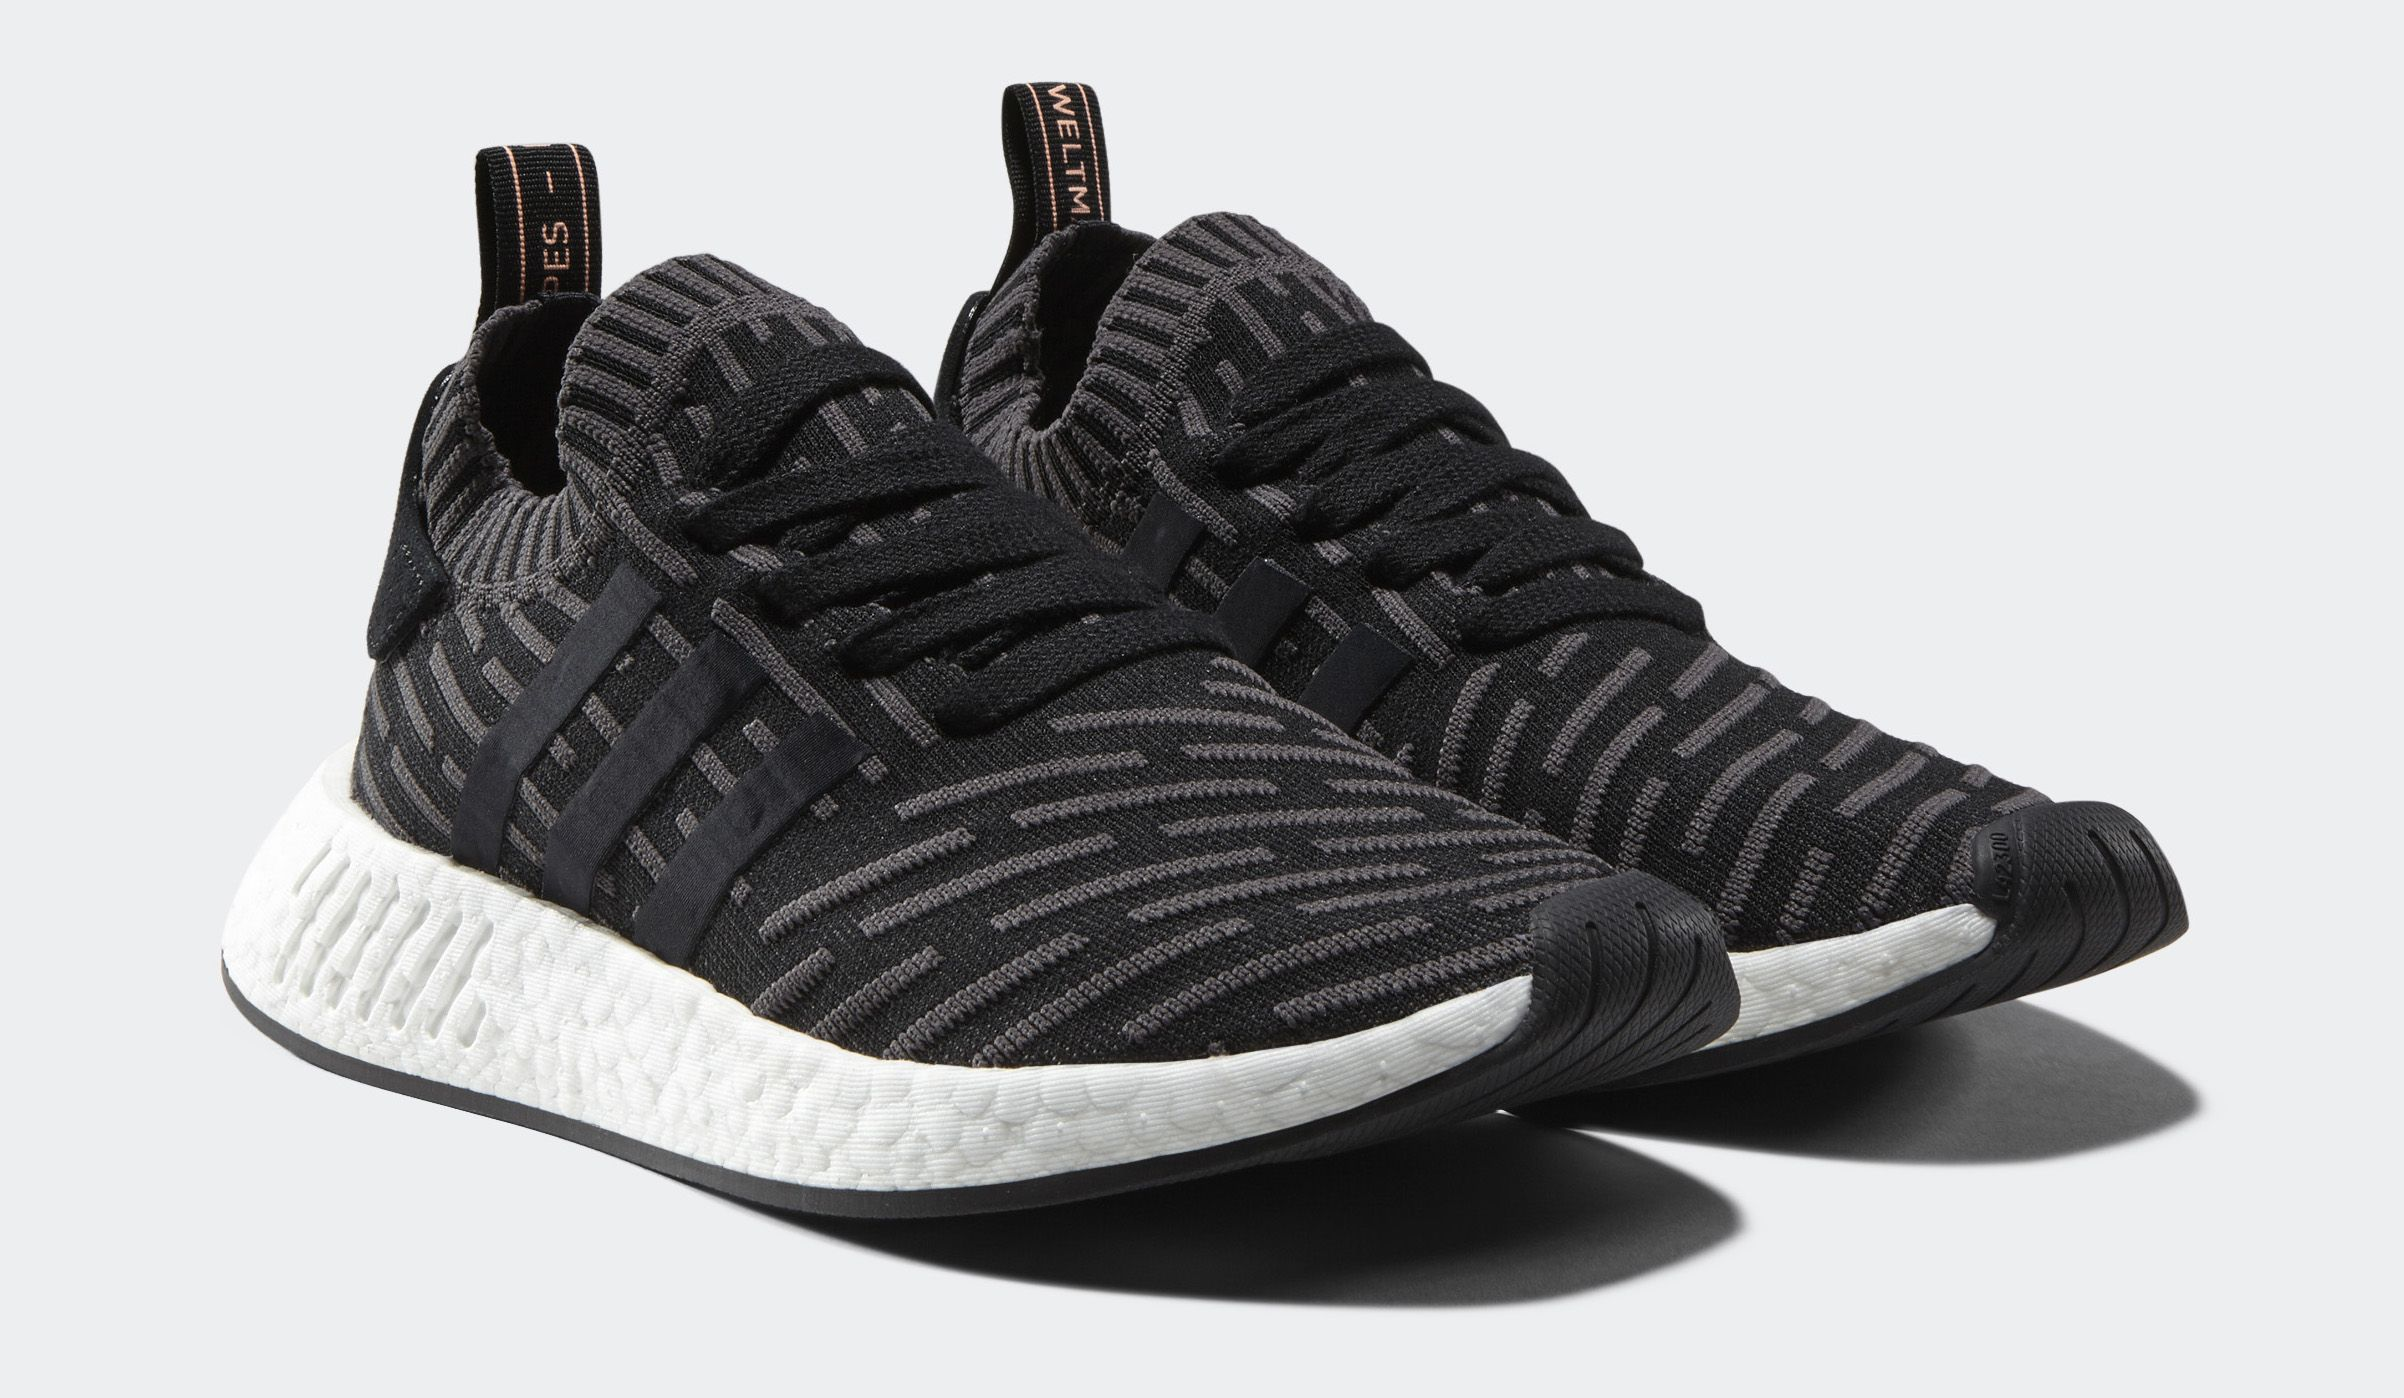 f99b7a53c The Adidas NMD R2 is releasing on Dec. 3  here s a look at the first pairs.